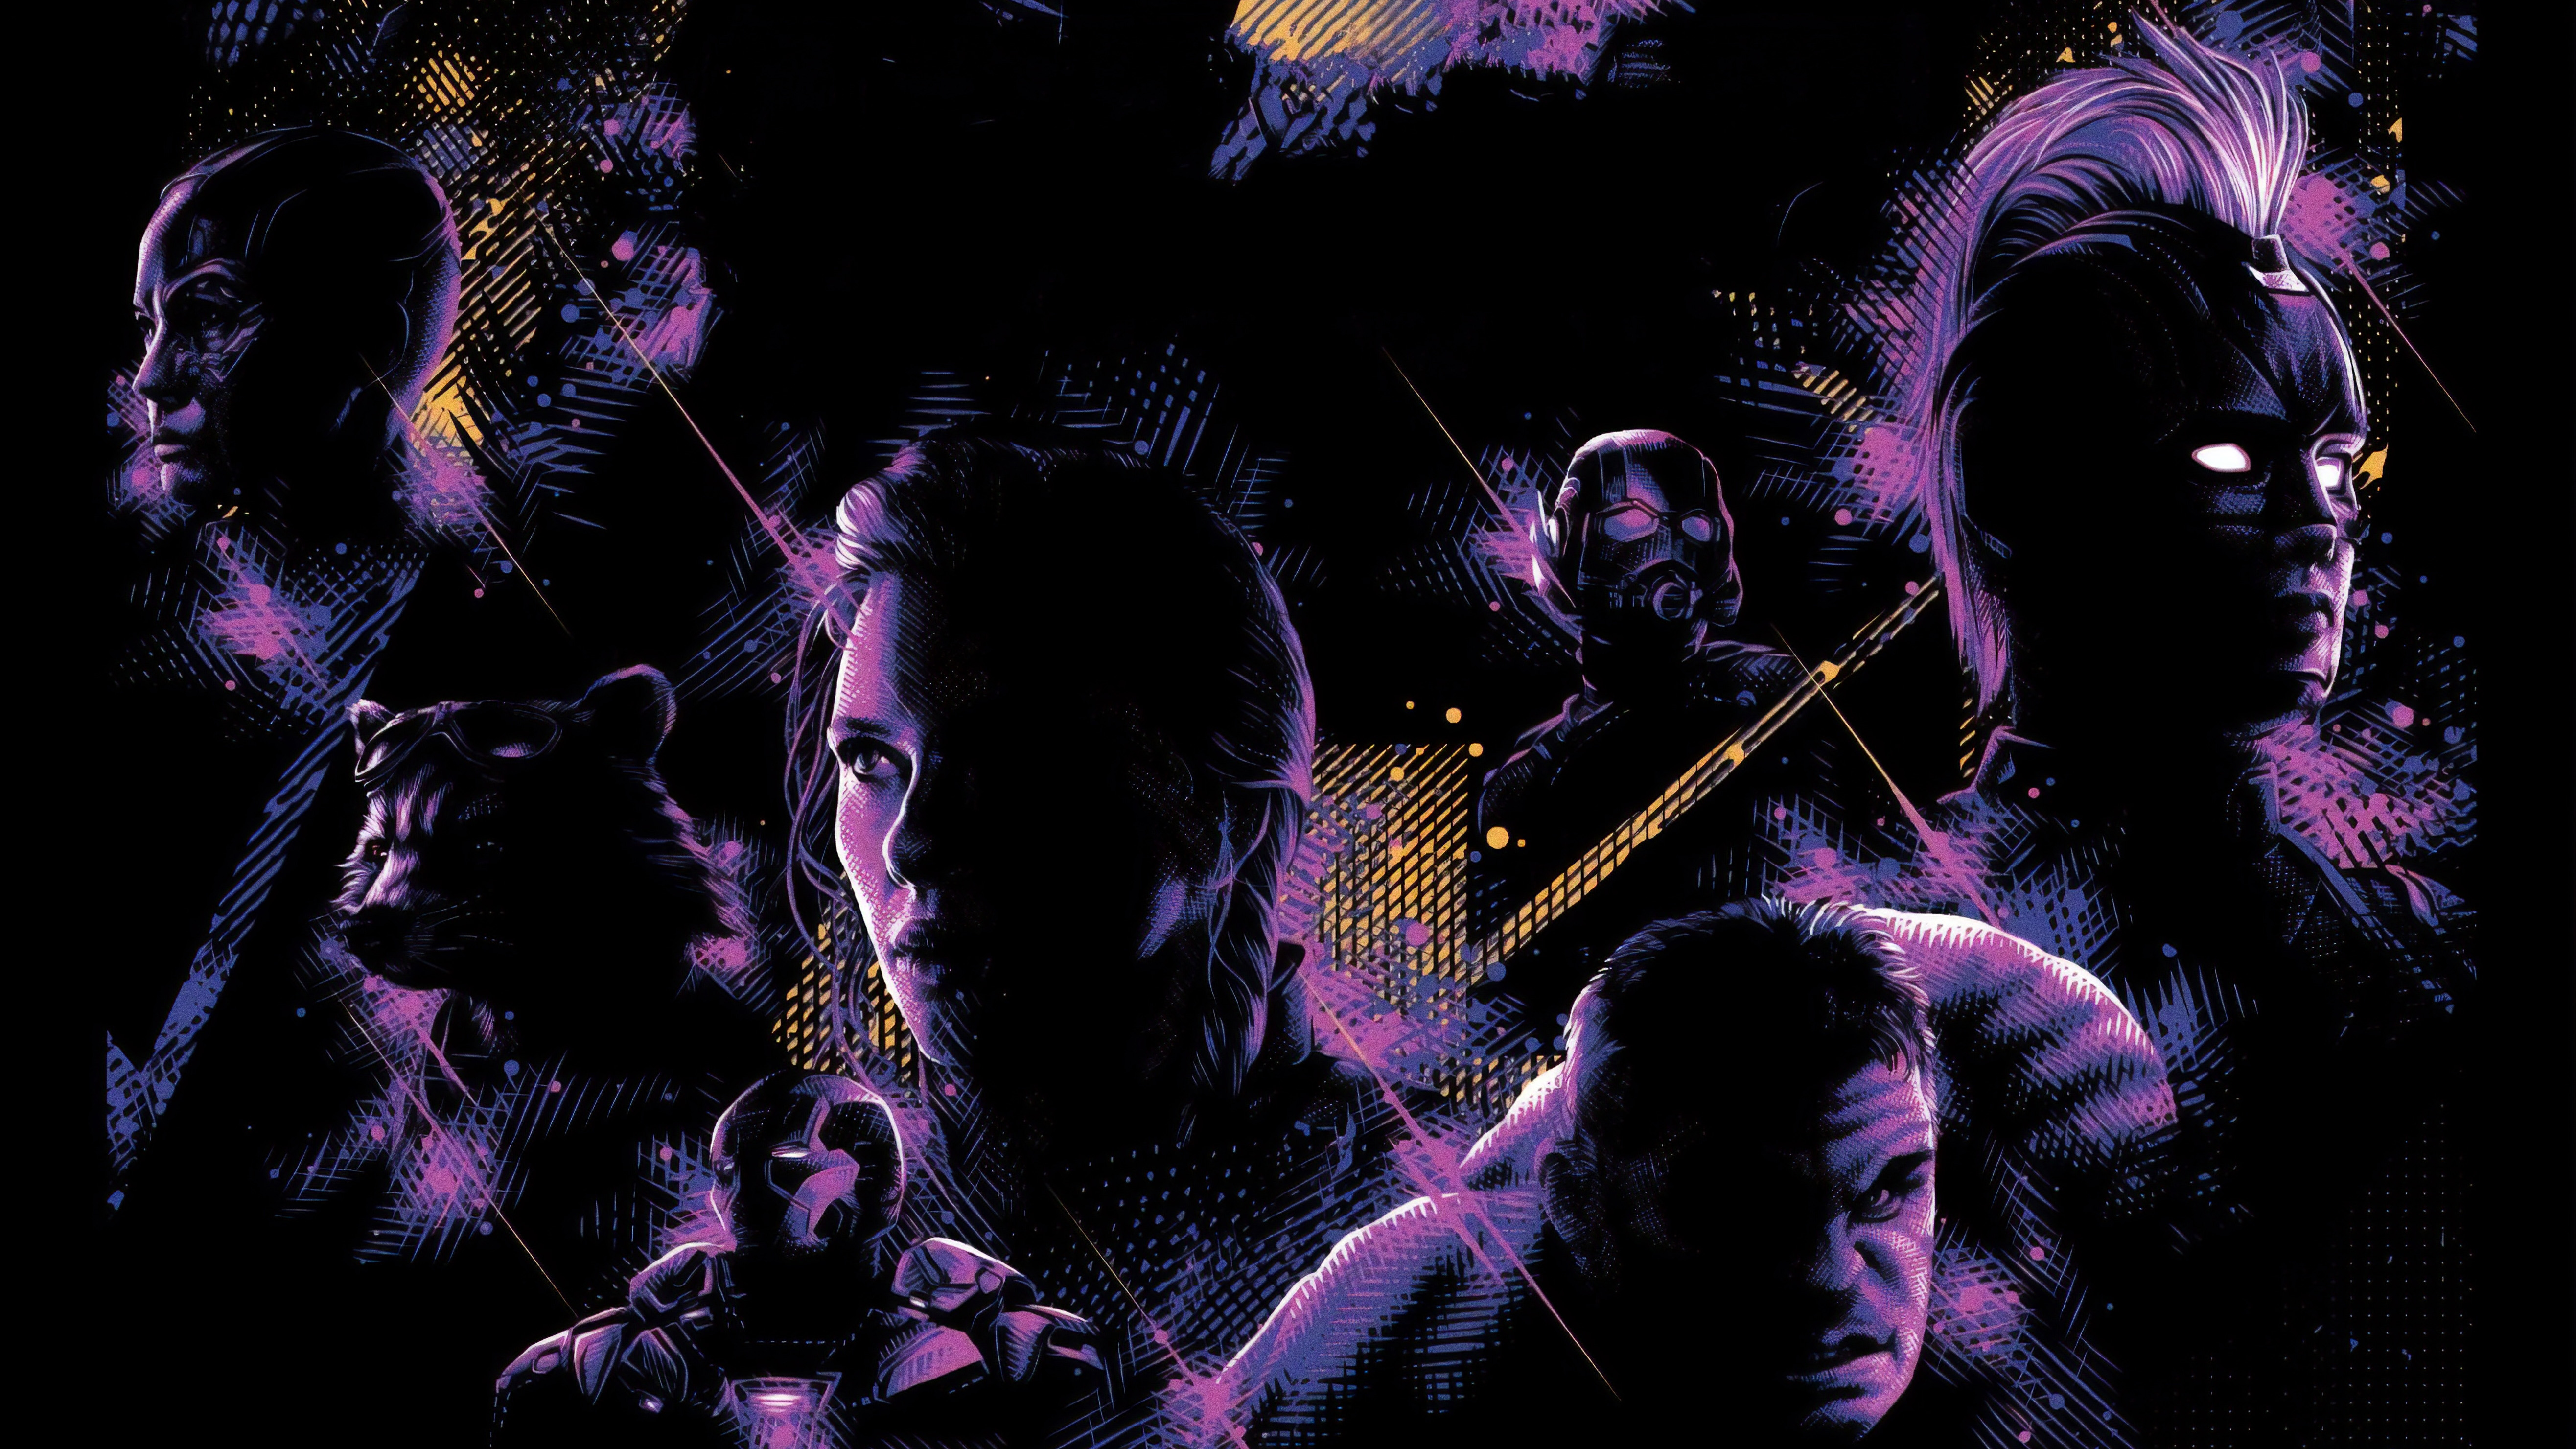 Avengers Endgame New Poster 5k Hd Movies 4k Wallpapers Images